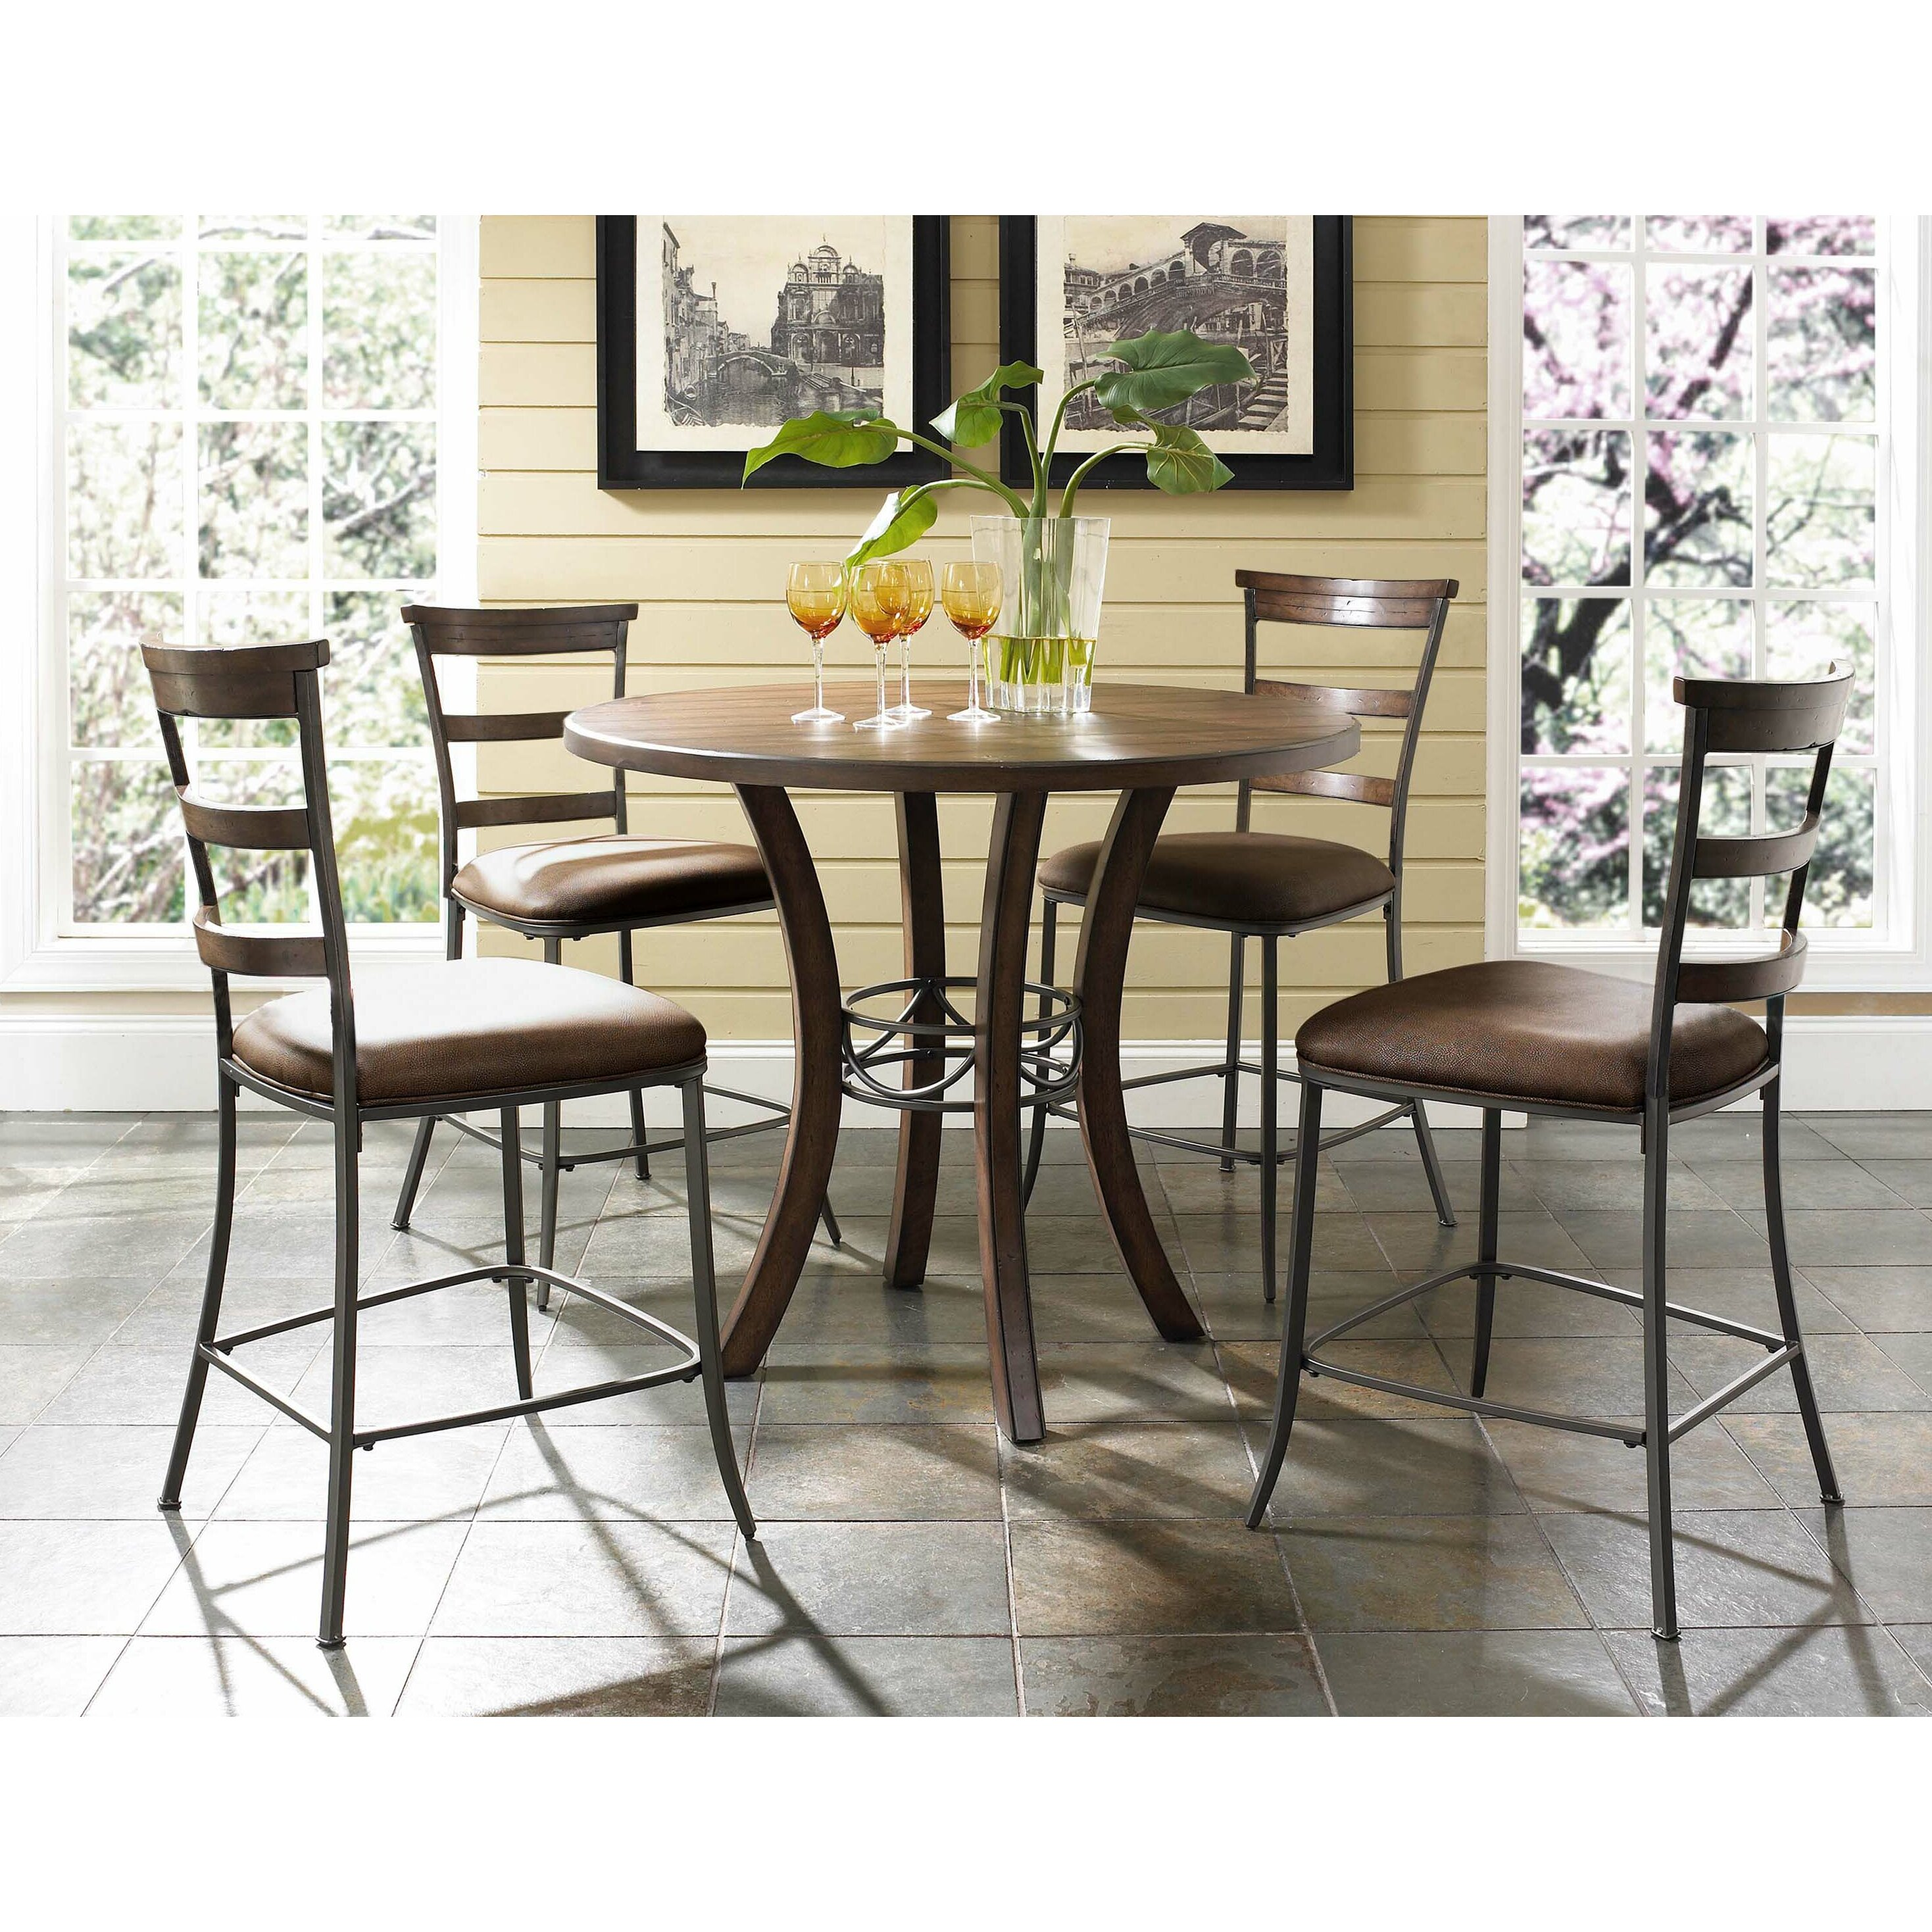 hillsdale furniture cameron round counter height dining table